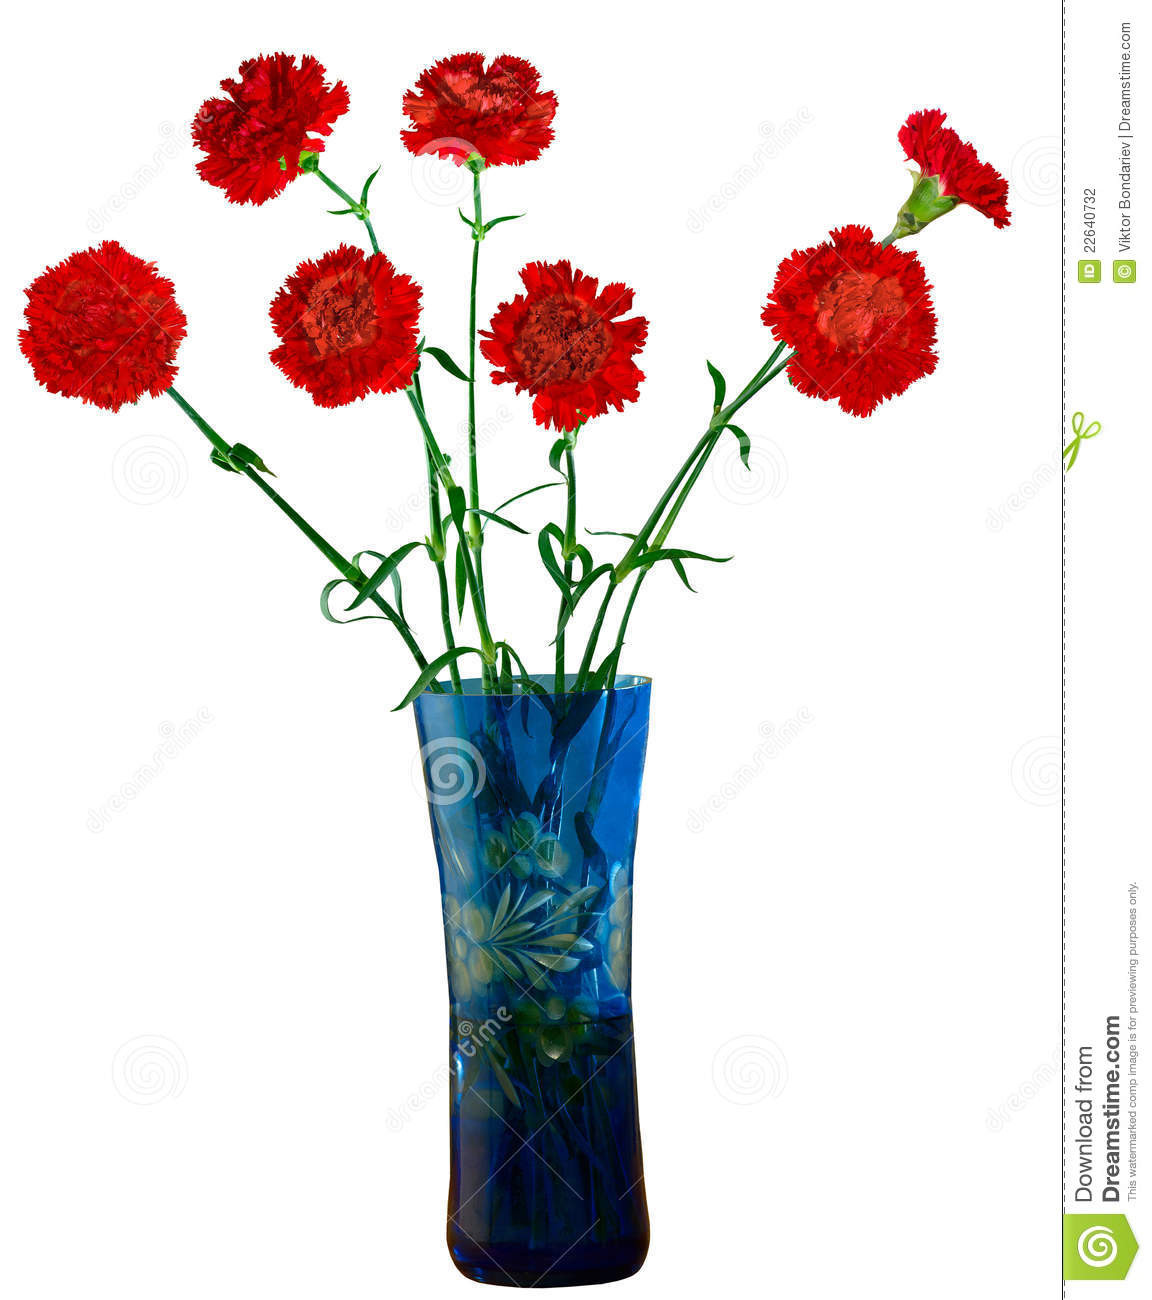 colorful flowers in a vase of flower vase design clipart flowers healthy in vases design pictures beautiful up seasonal colorful flowers in a vase nature carnations season background